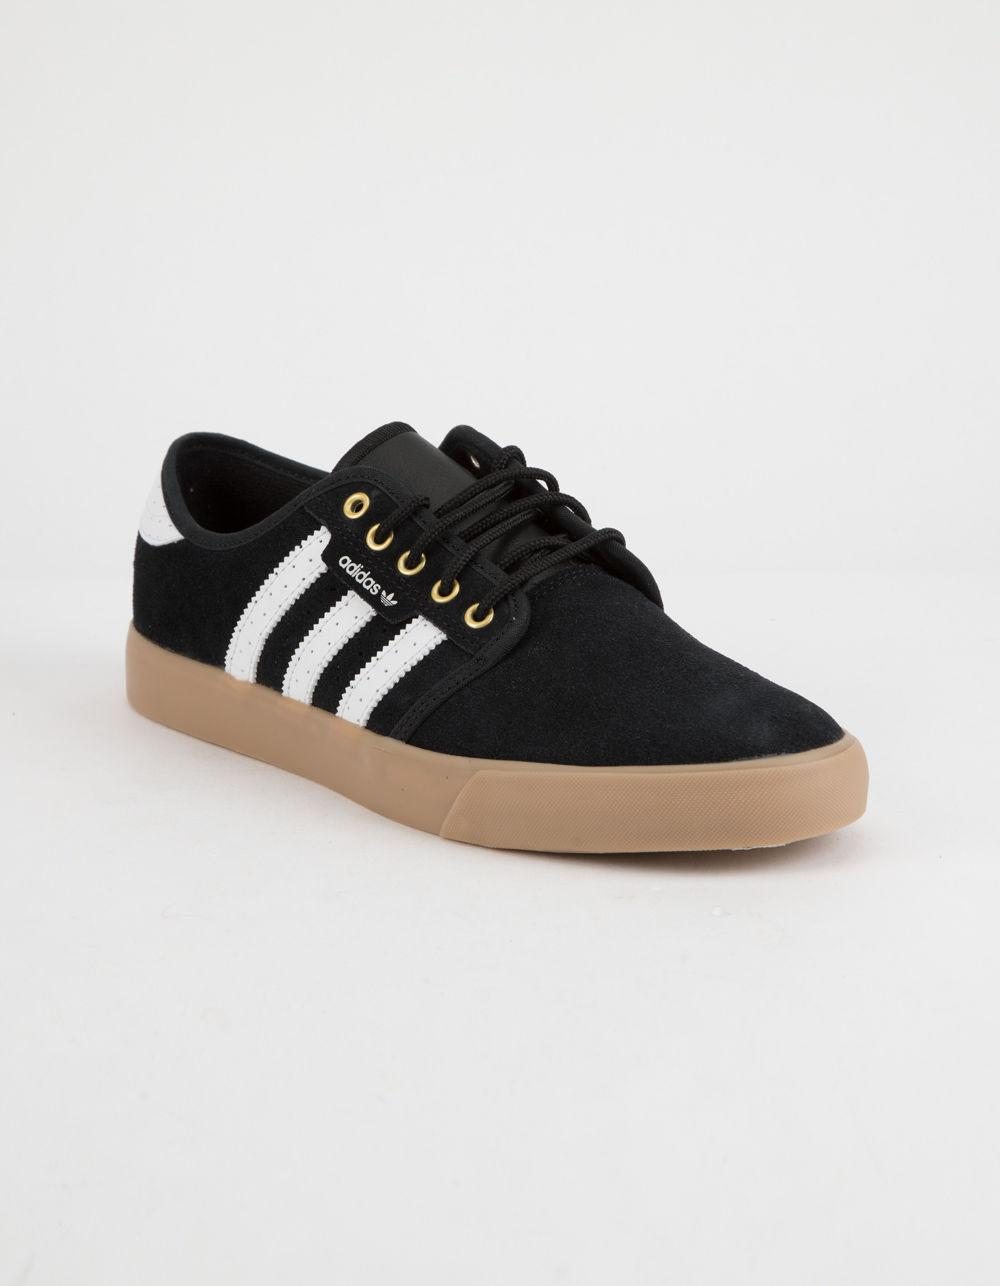 Lyst - adidas Seeley Black   Gum Shoes in Black for Men 88c523474